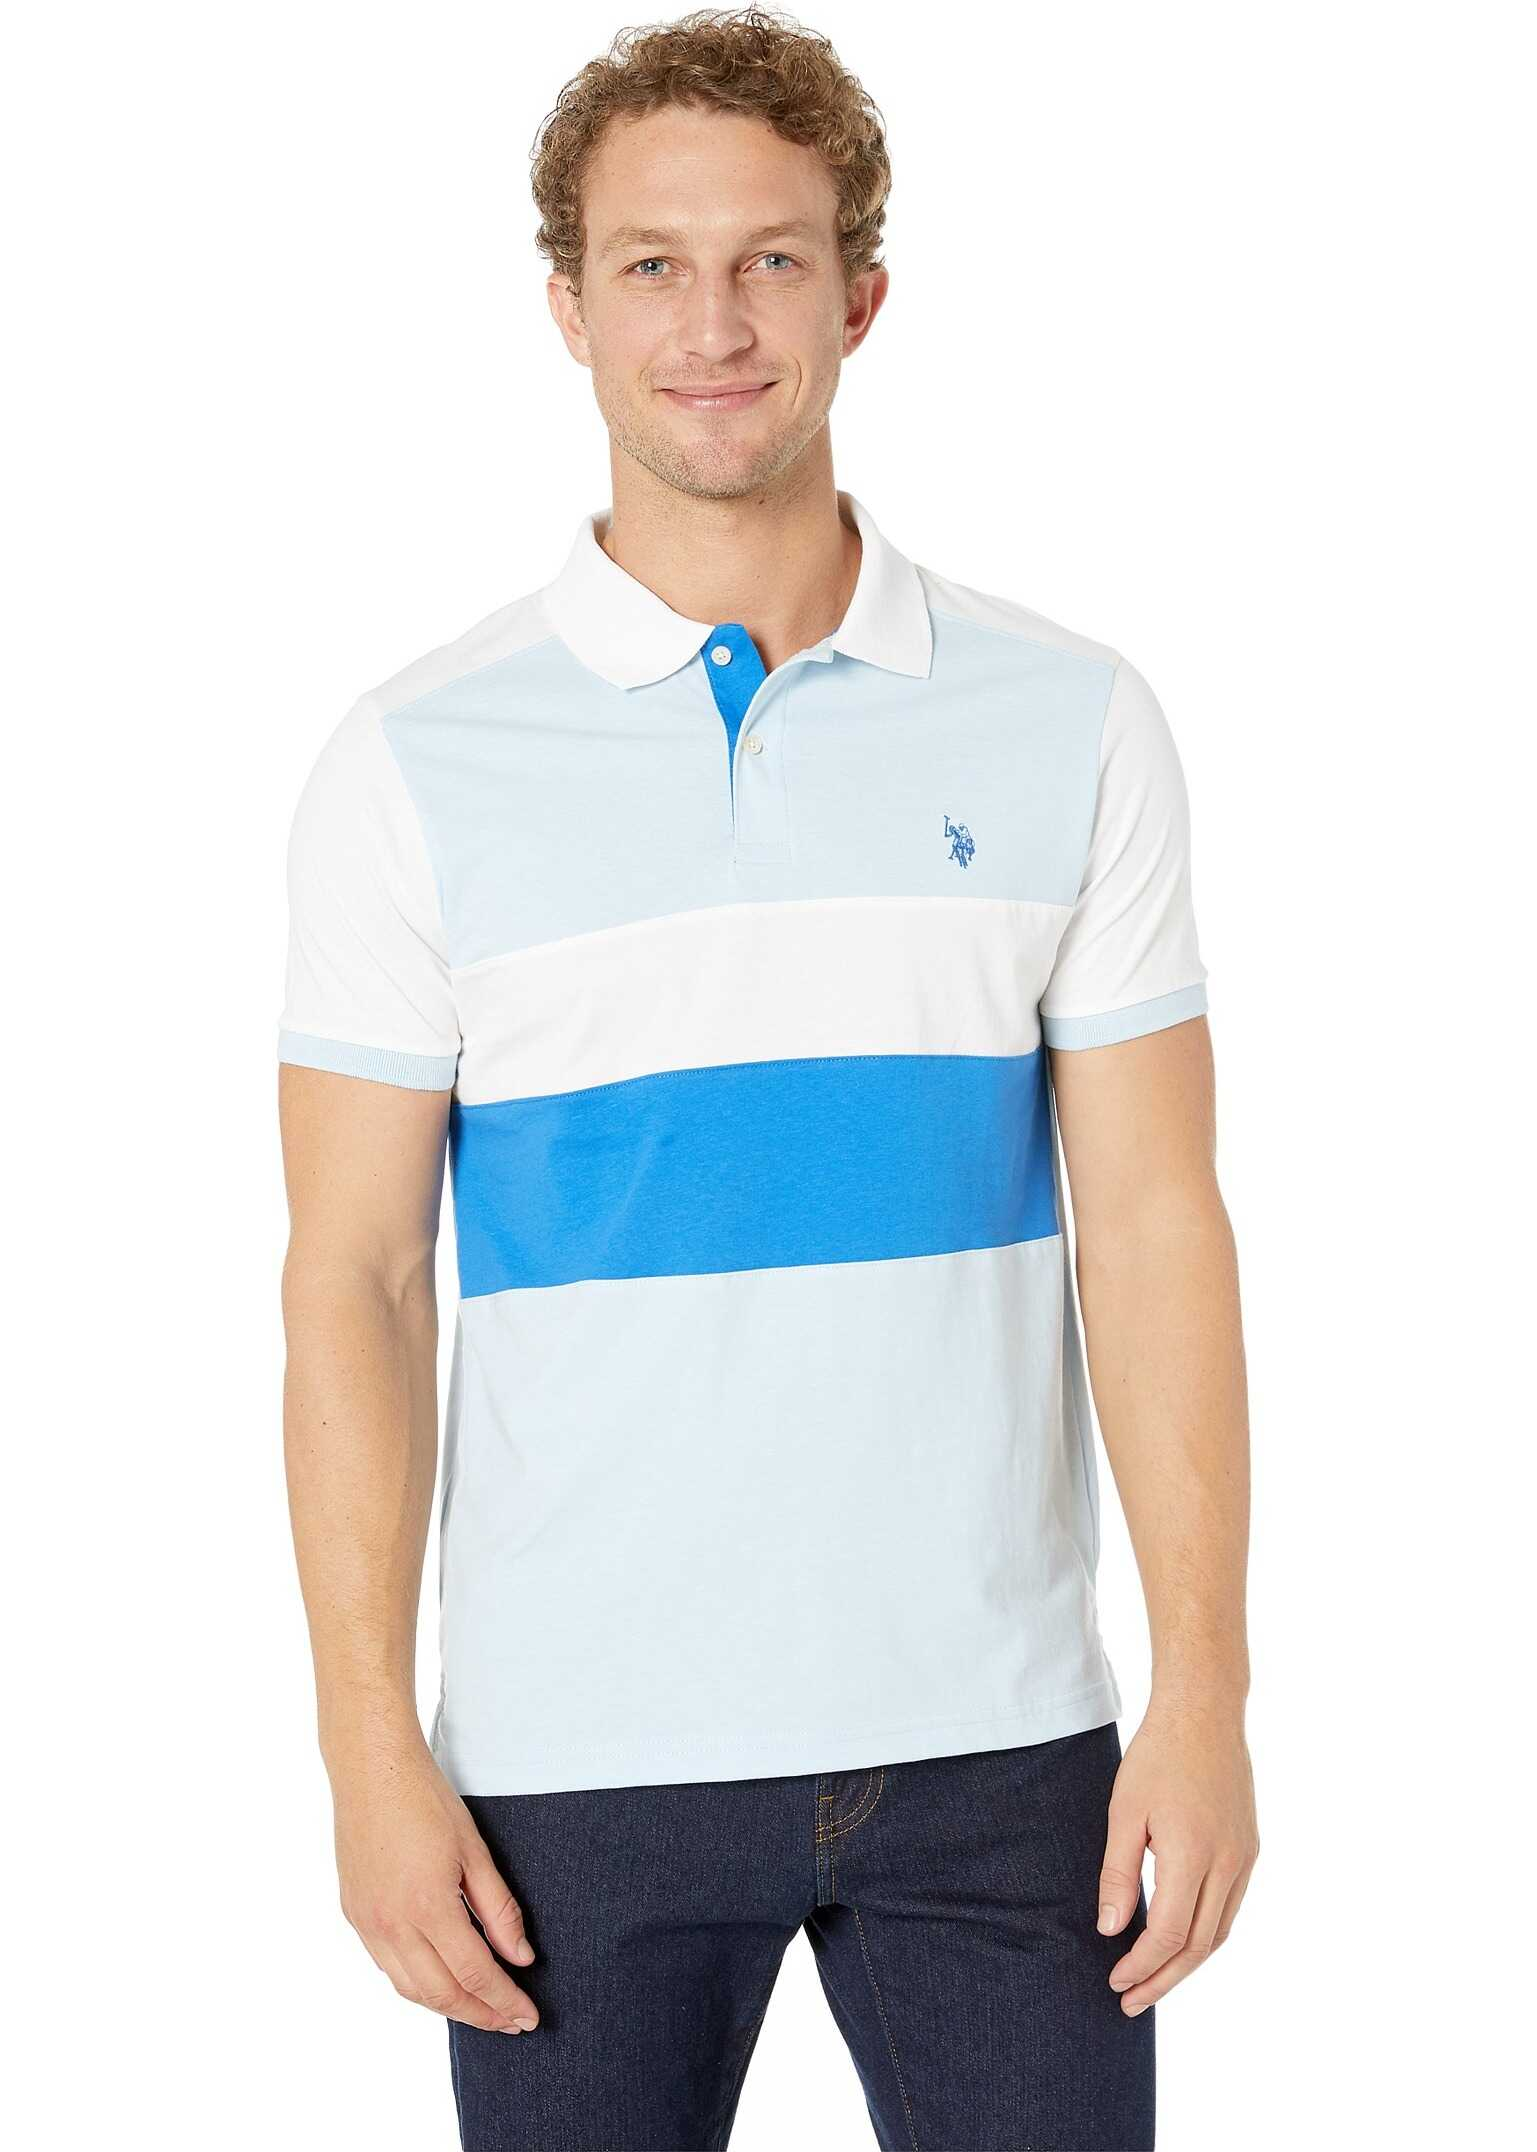 U.S. POLO ASSN. Slim Fit Chest Stripe Color Block Polo Shirt Terry Blue Heather